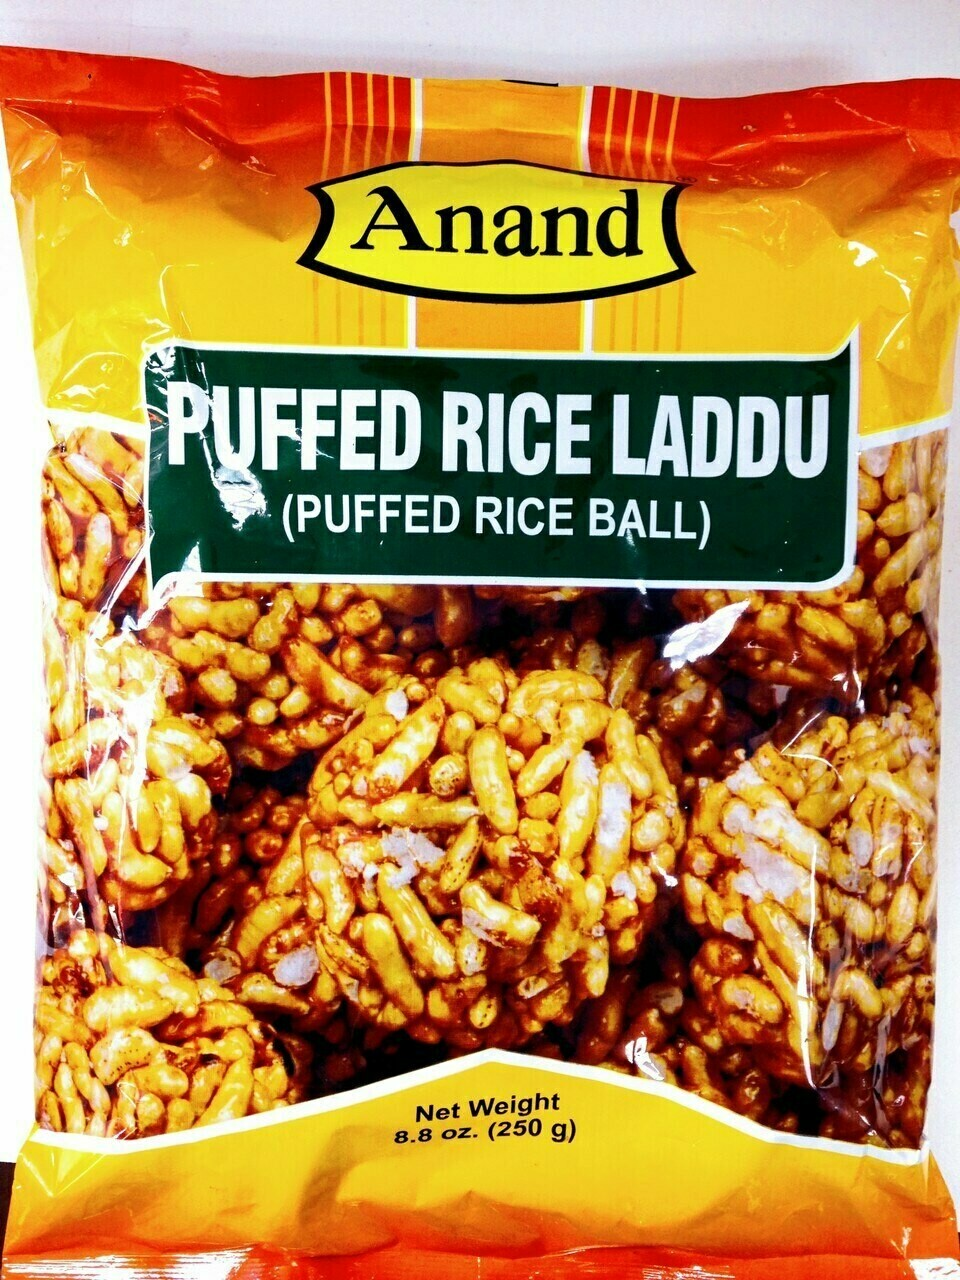 Anand Puffed Rice Laddu - 250 g